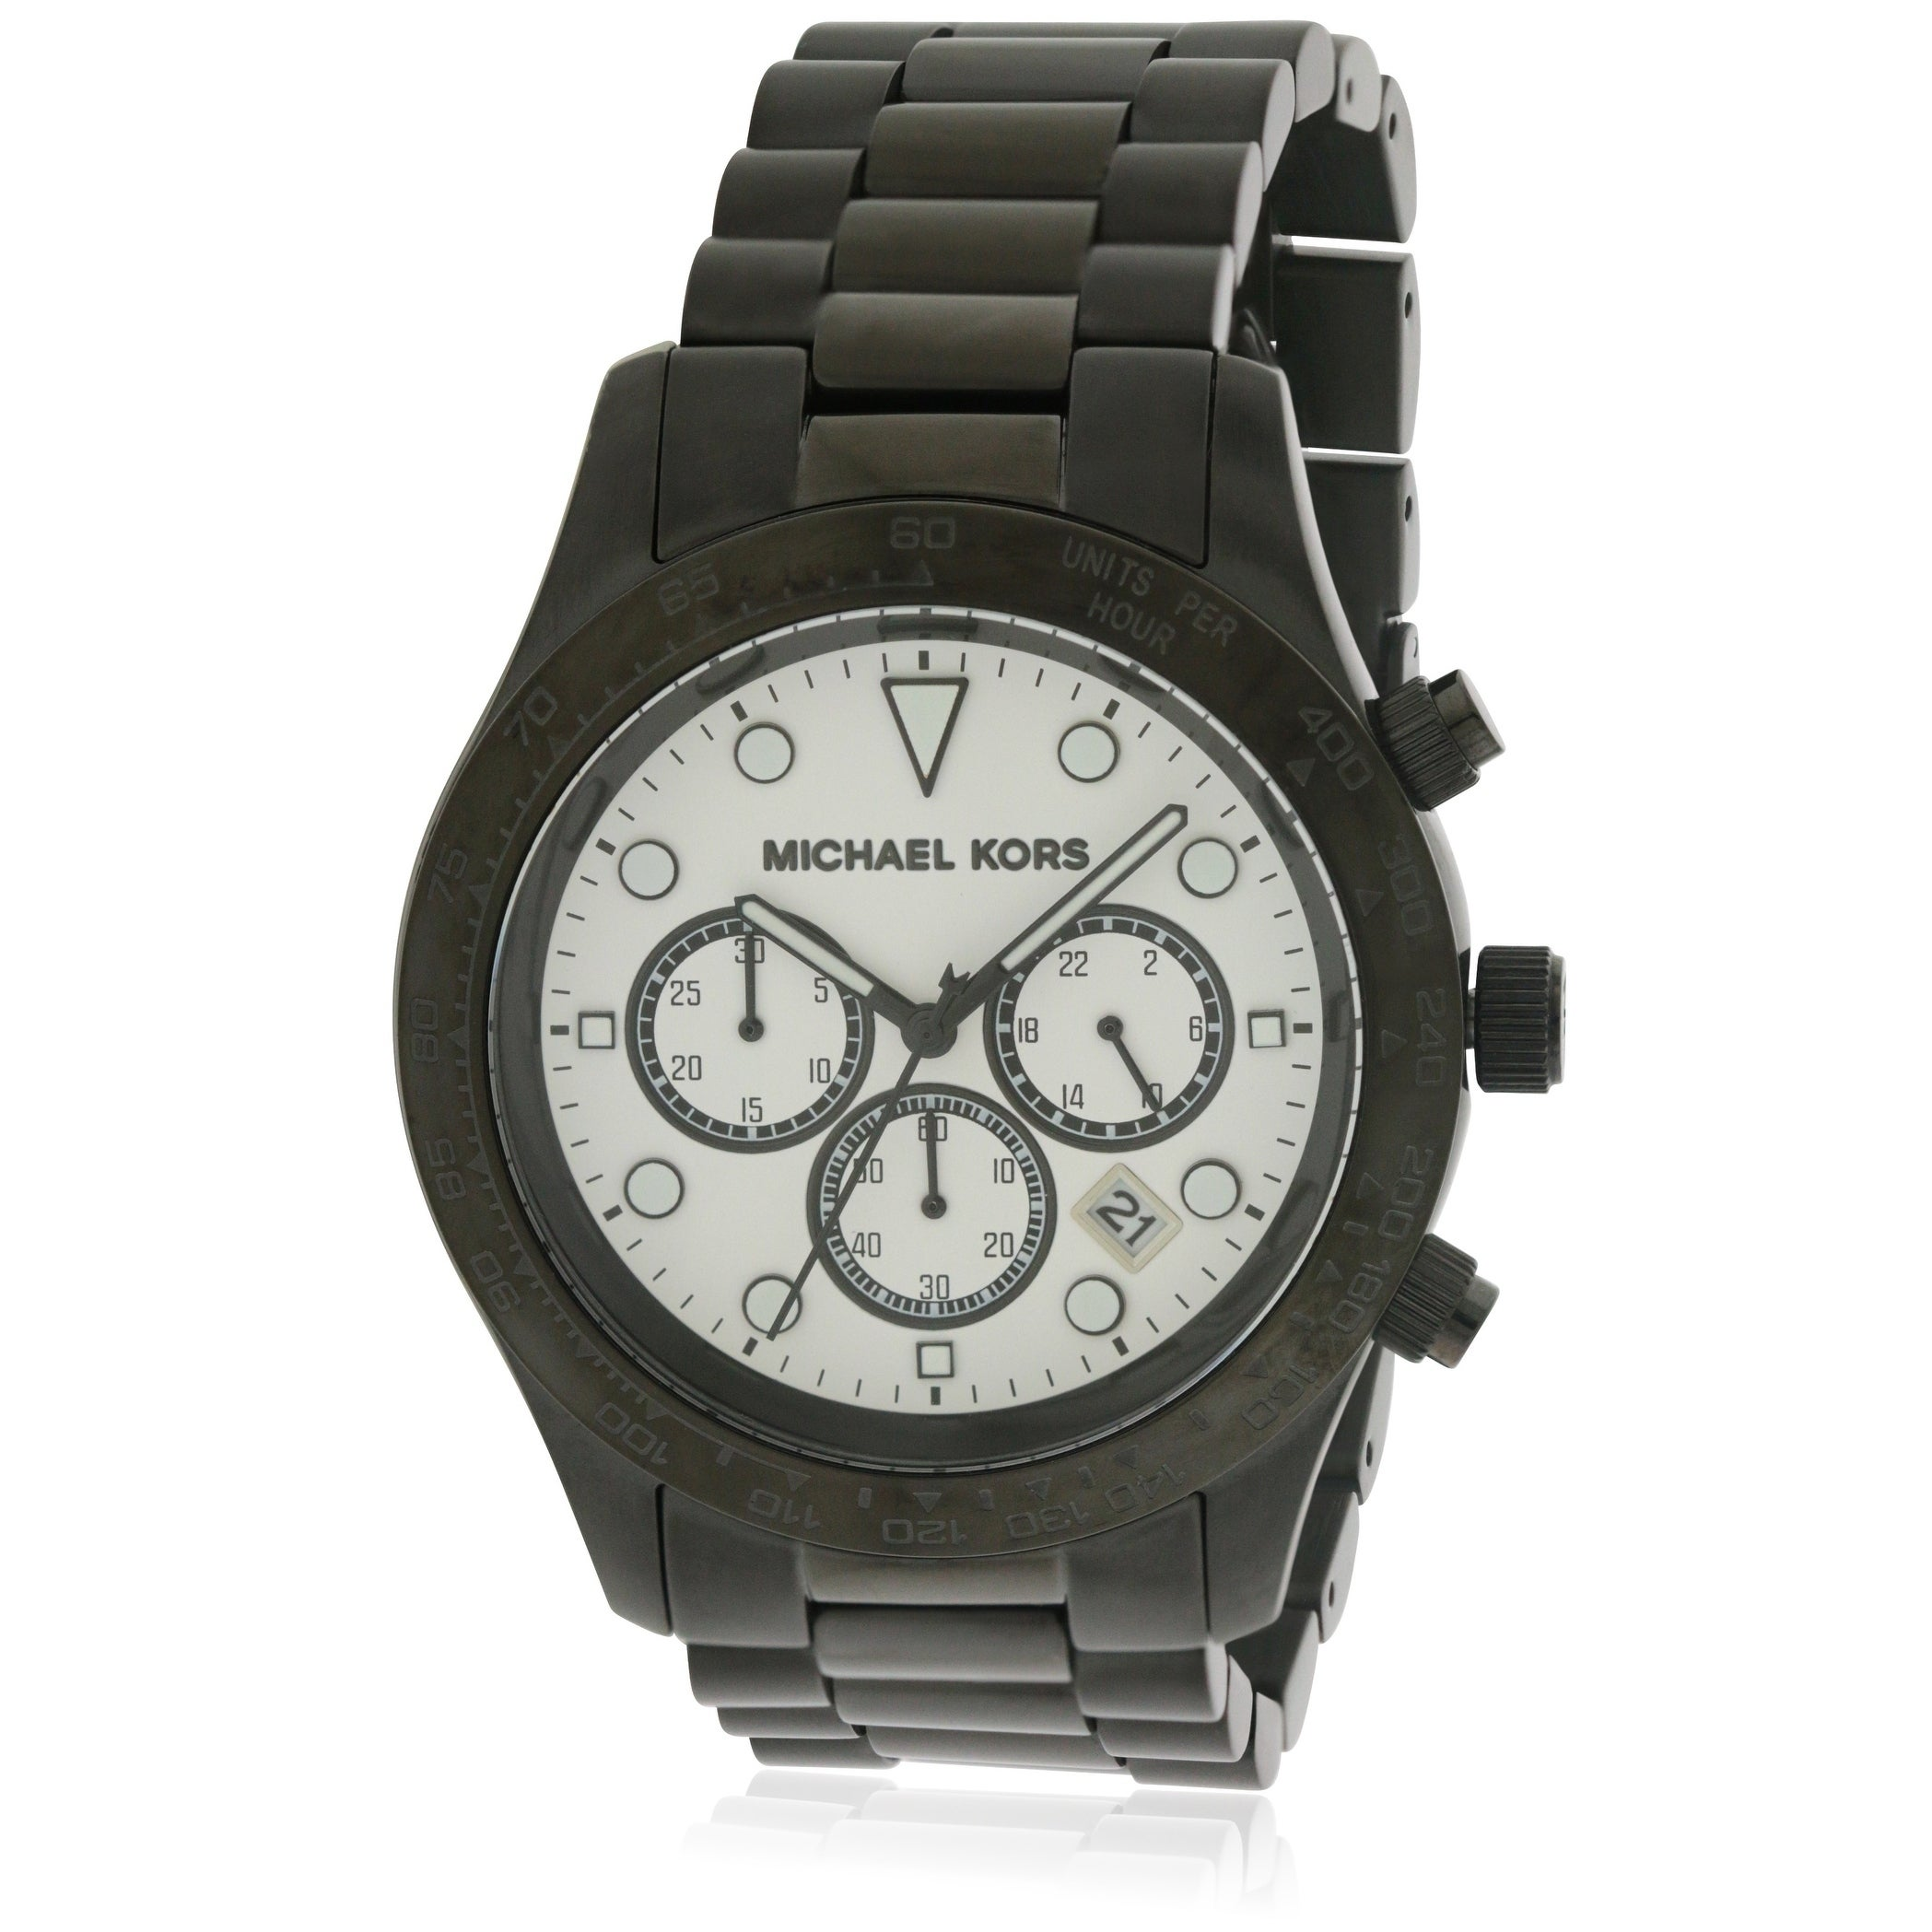 520a299be768 44mm Michael Kors Watches